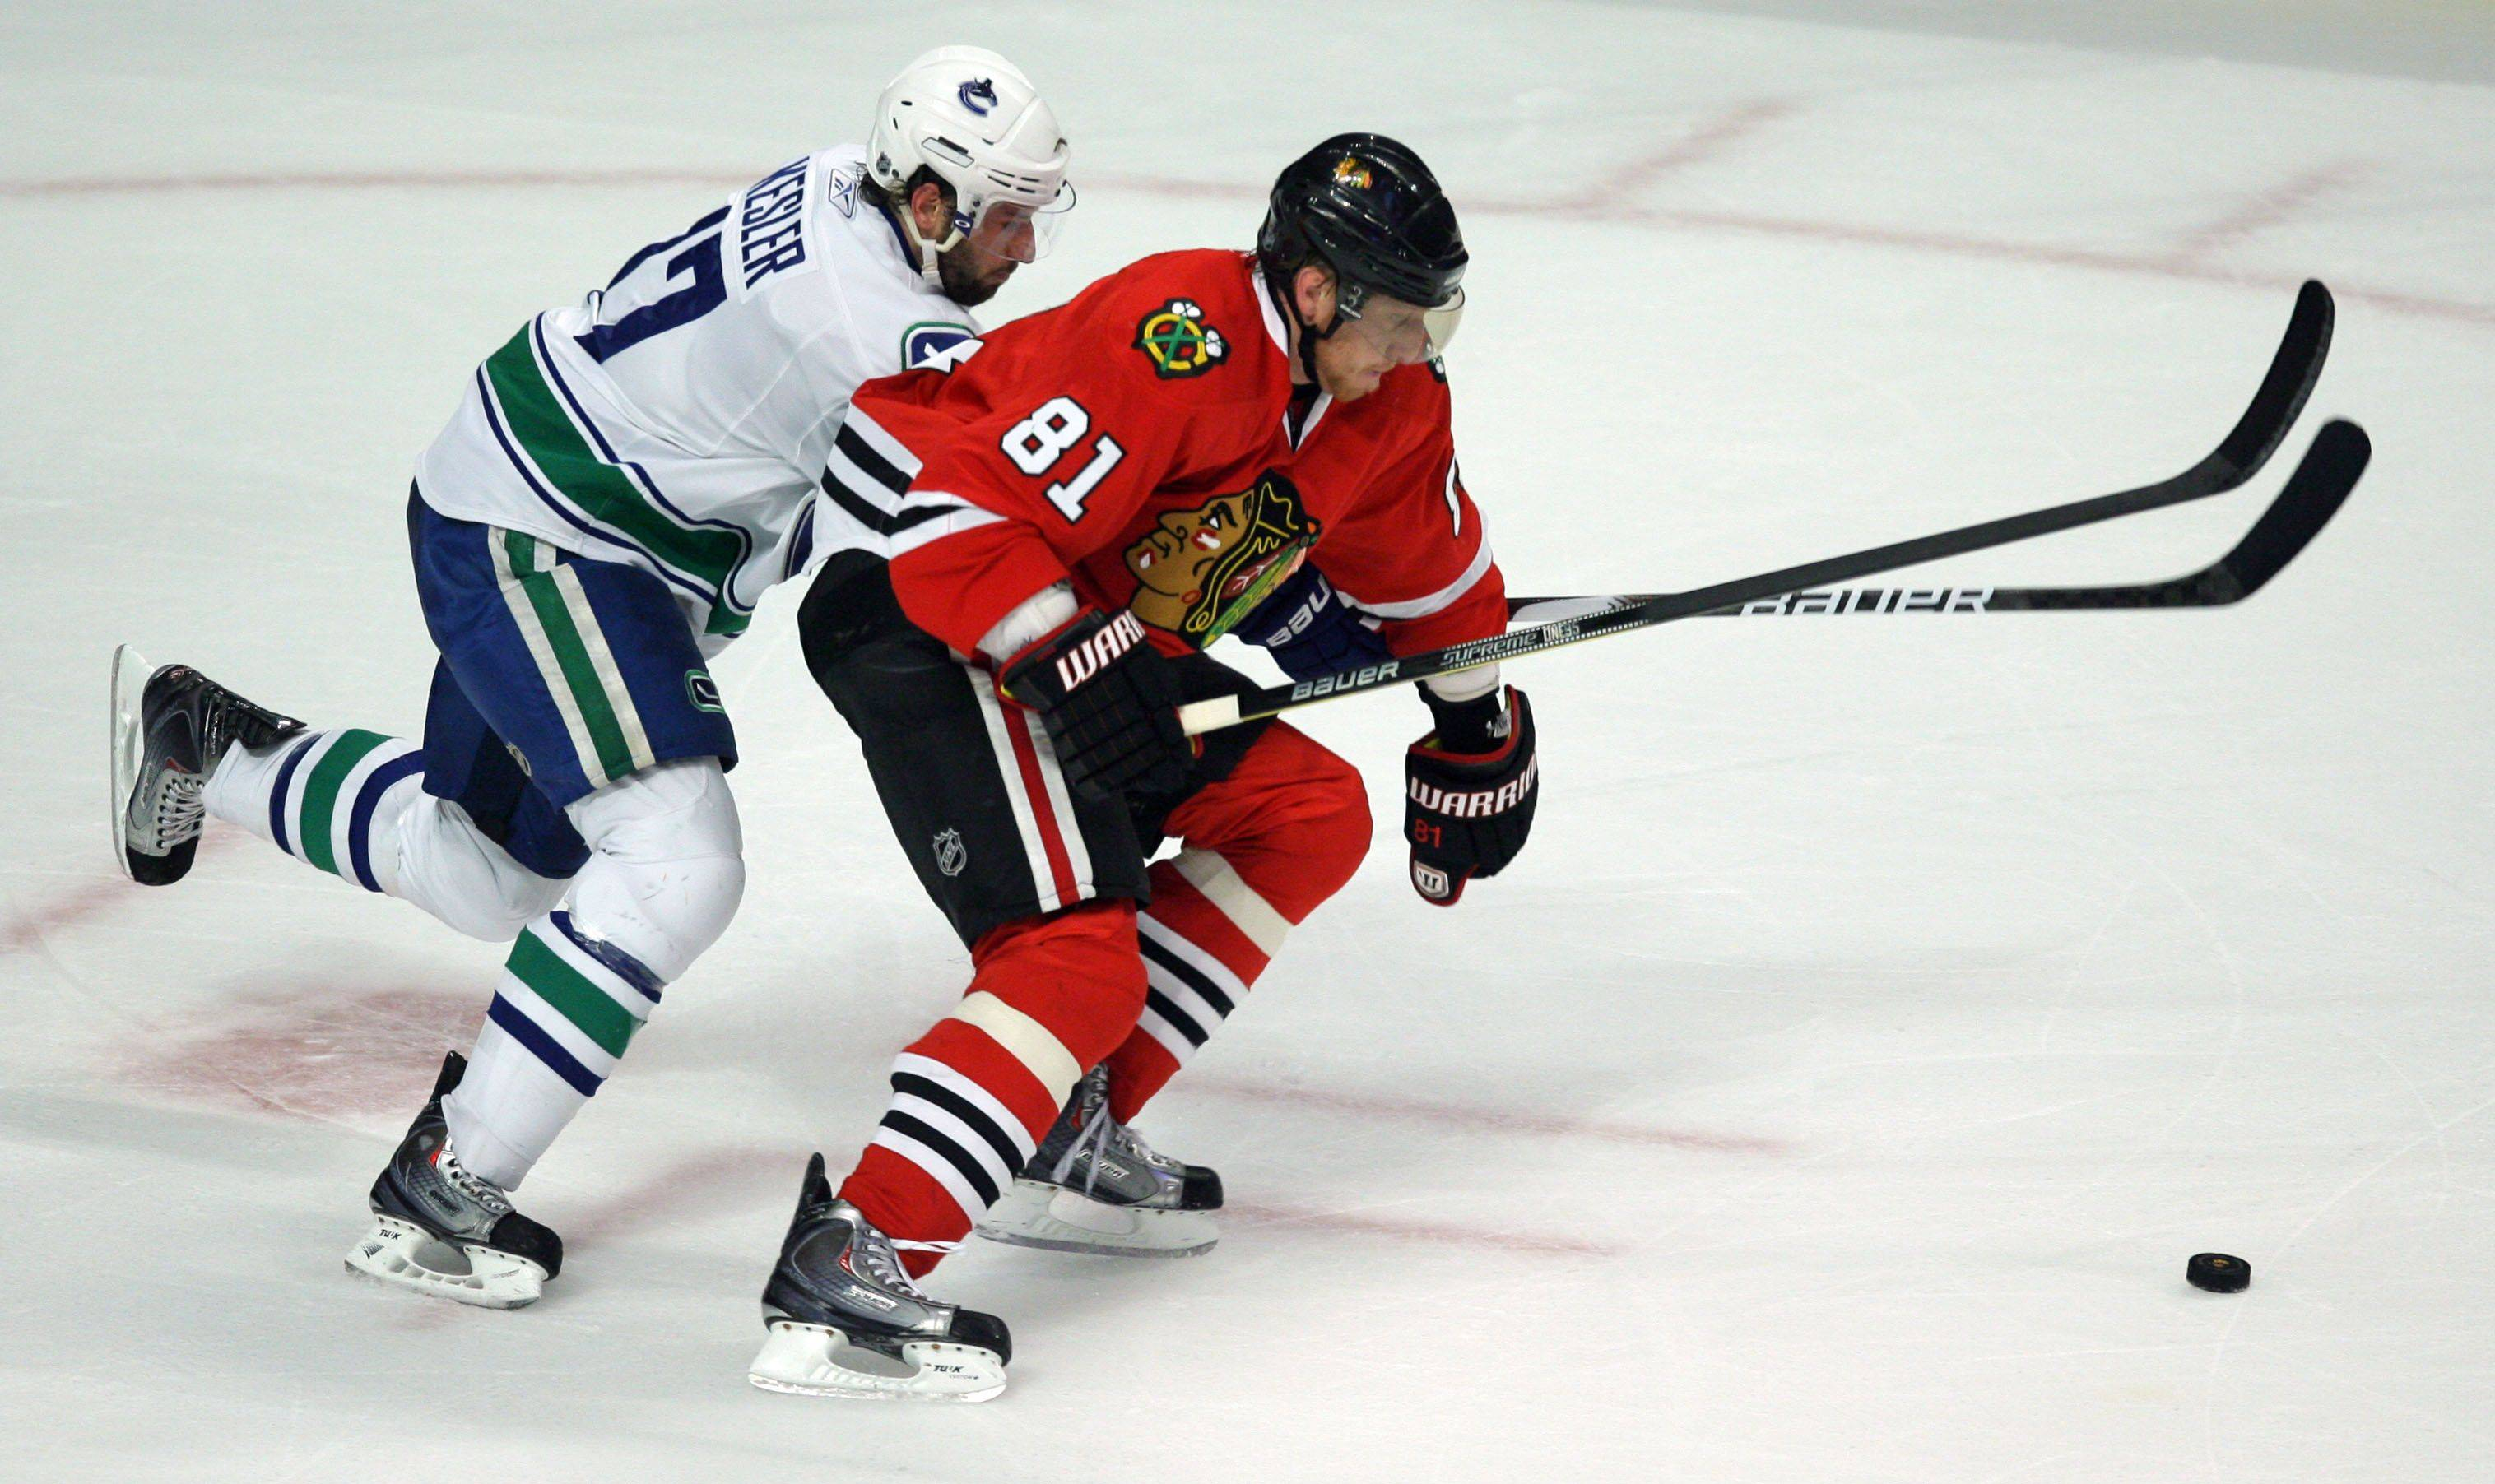 Blackhawks vs. Canucks: Who has the edge?